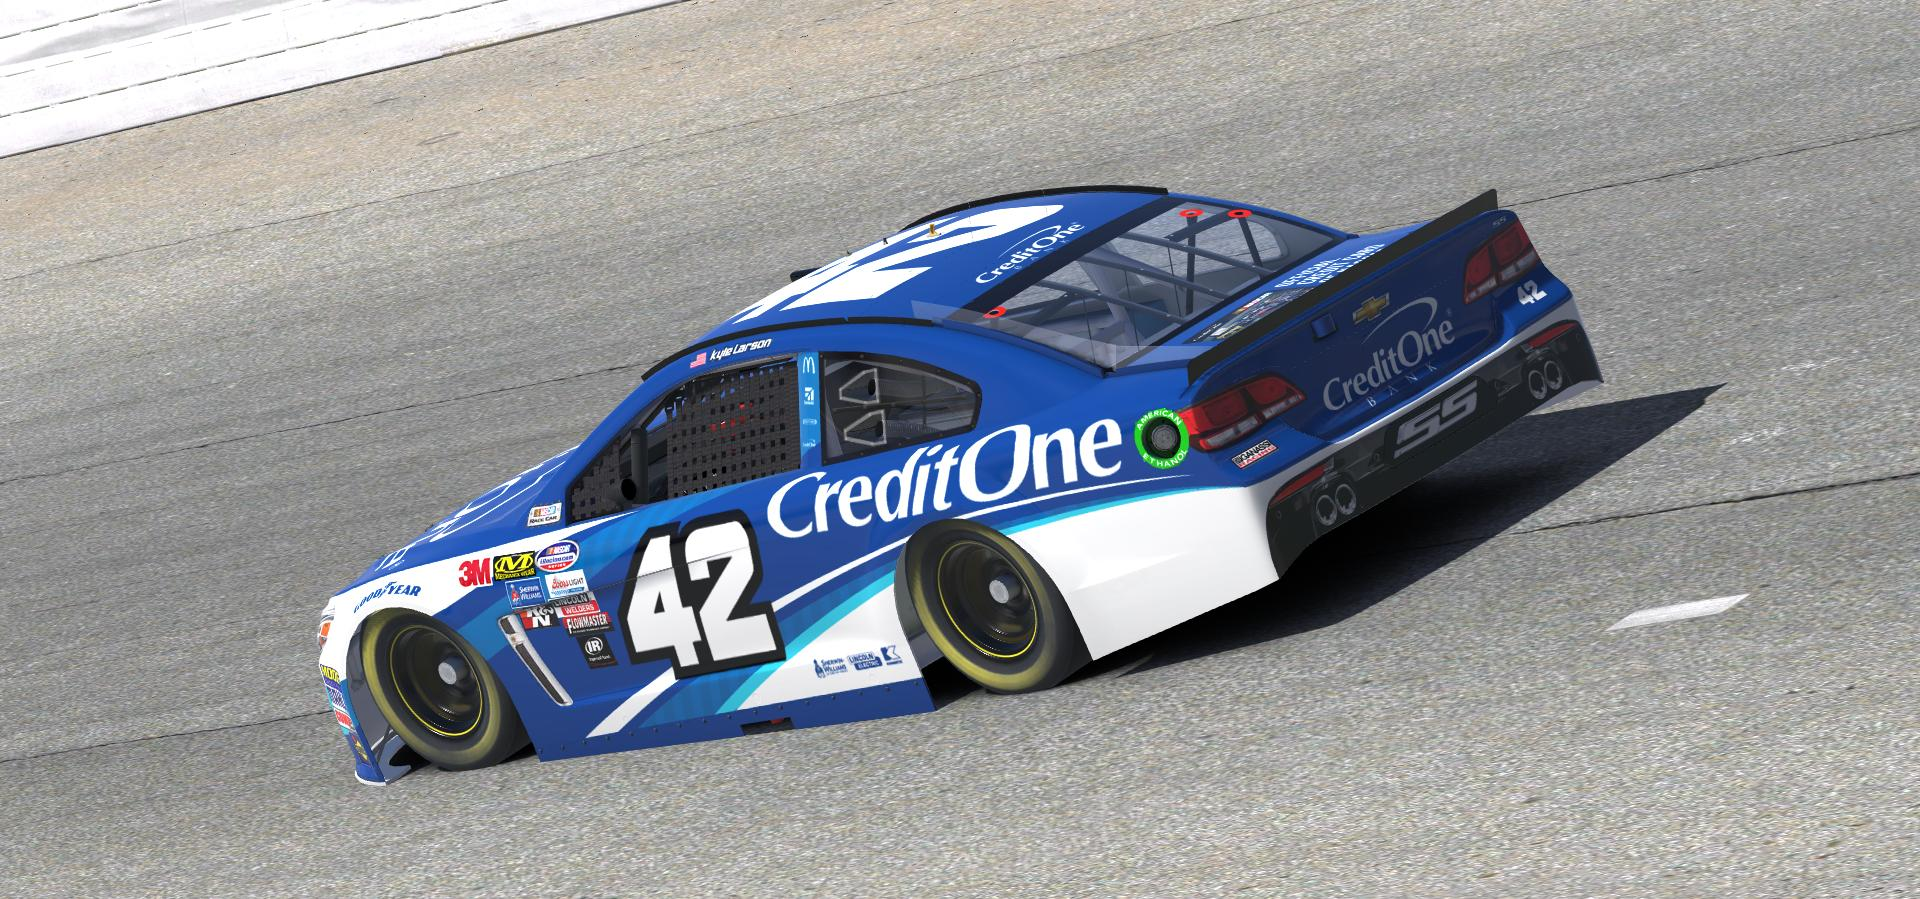 Preview of 2018 Kyle Larson Credit One Bank Chevy by Doug DeNise